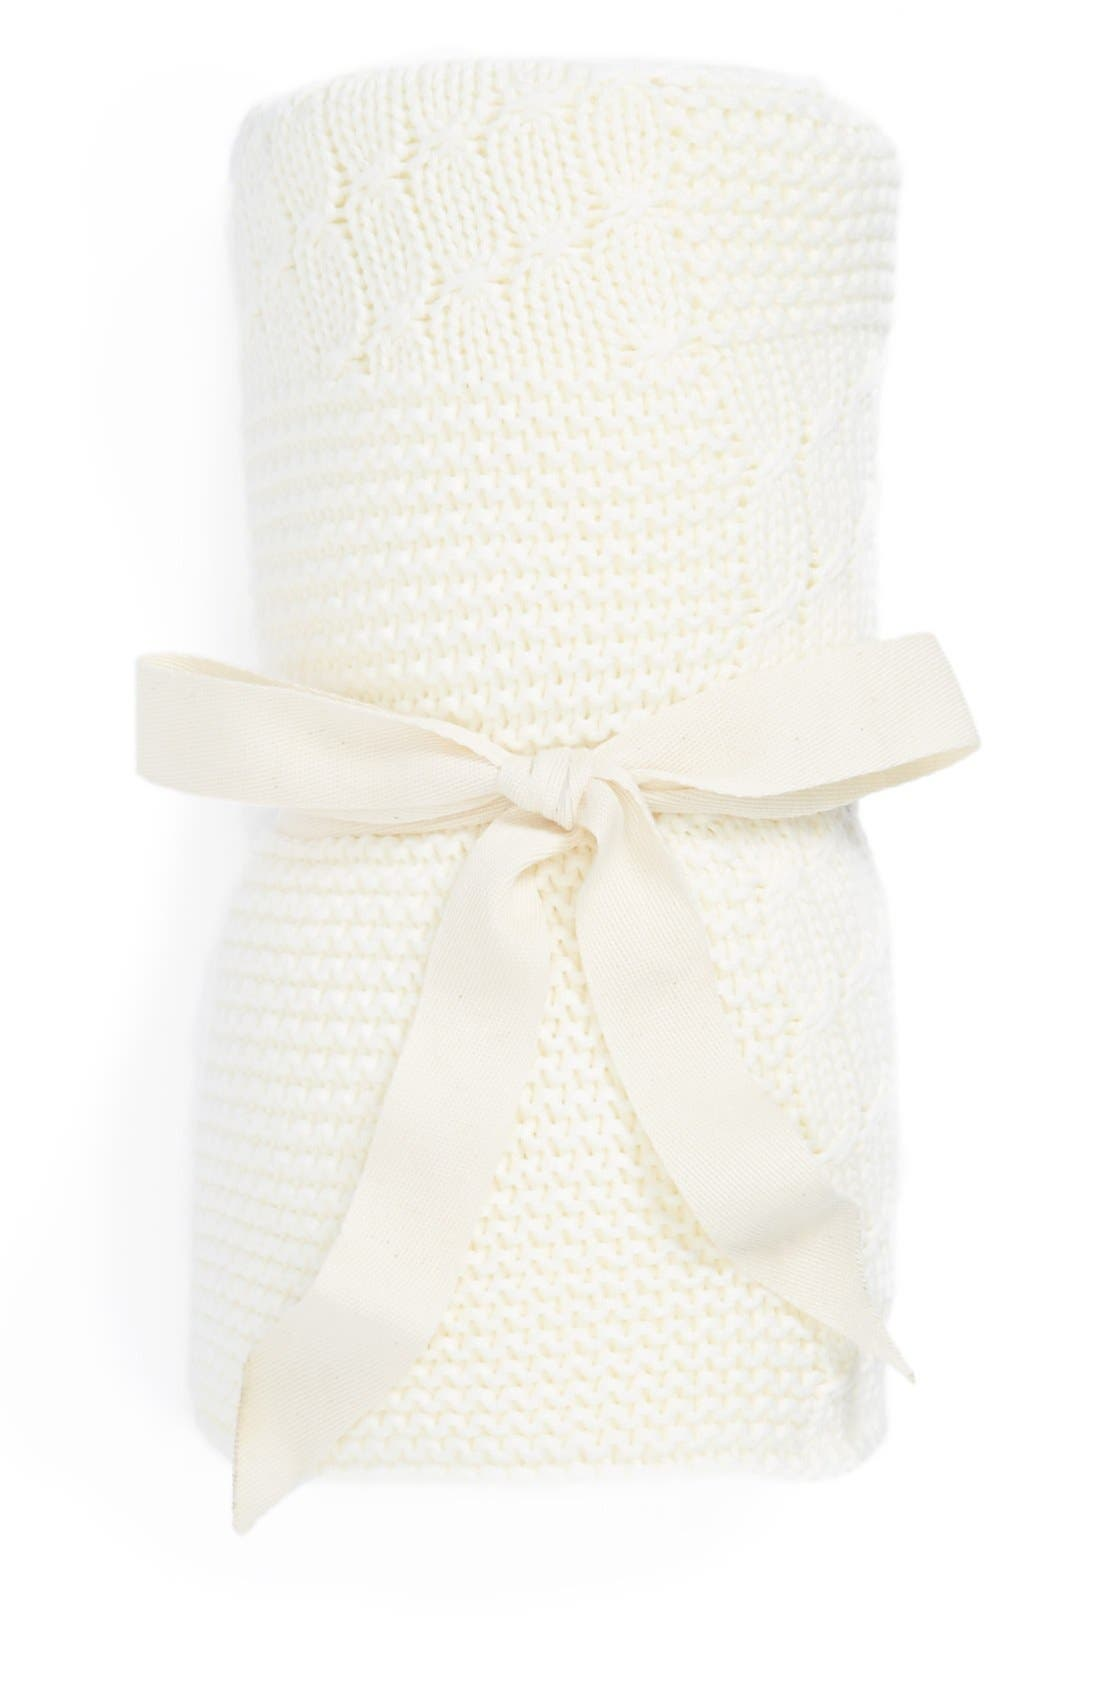 Main Image - Nordstrom Baby Patchwork Sweater Knit Blanket (Baby)